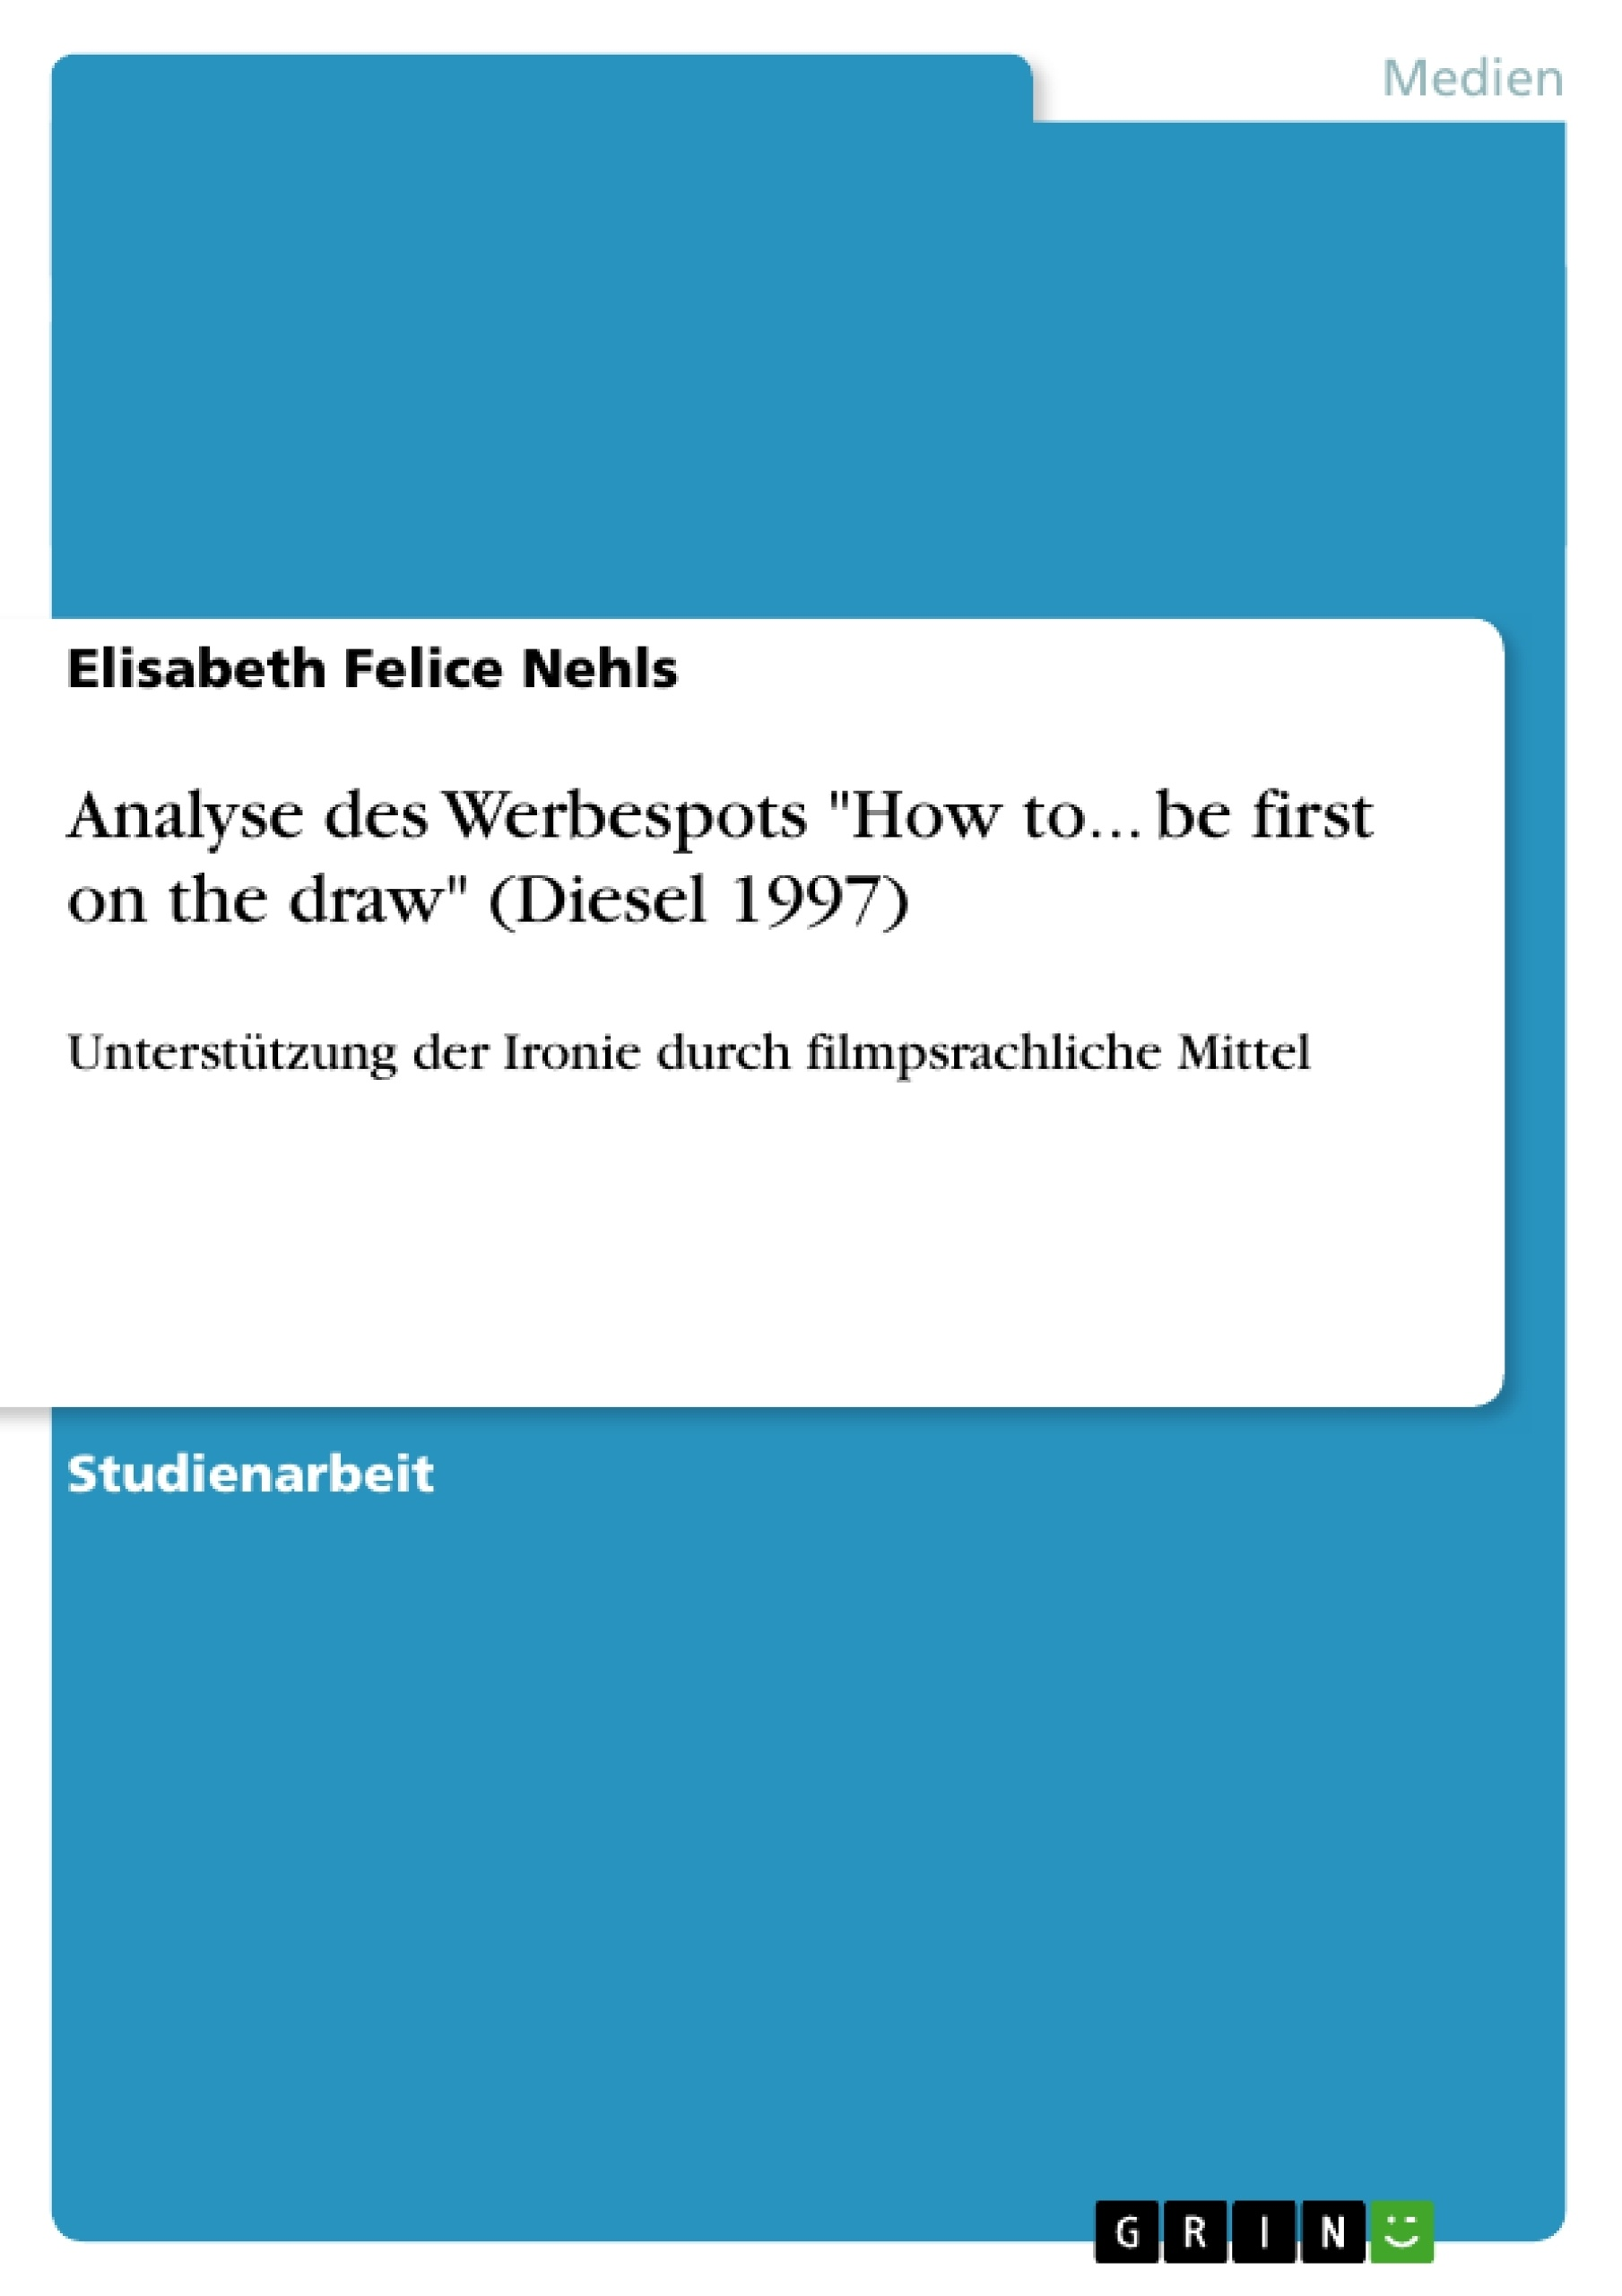 """Titel: Analyse des Werbespots """"How to... be first on the draw"""" (Diesel 1997)"""